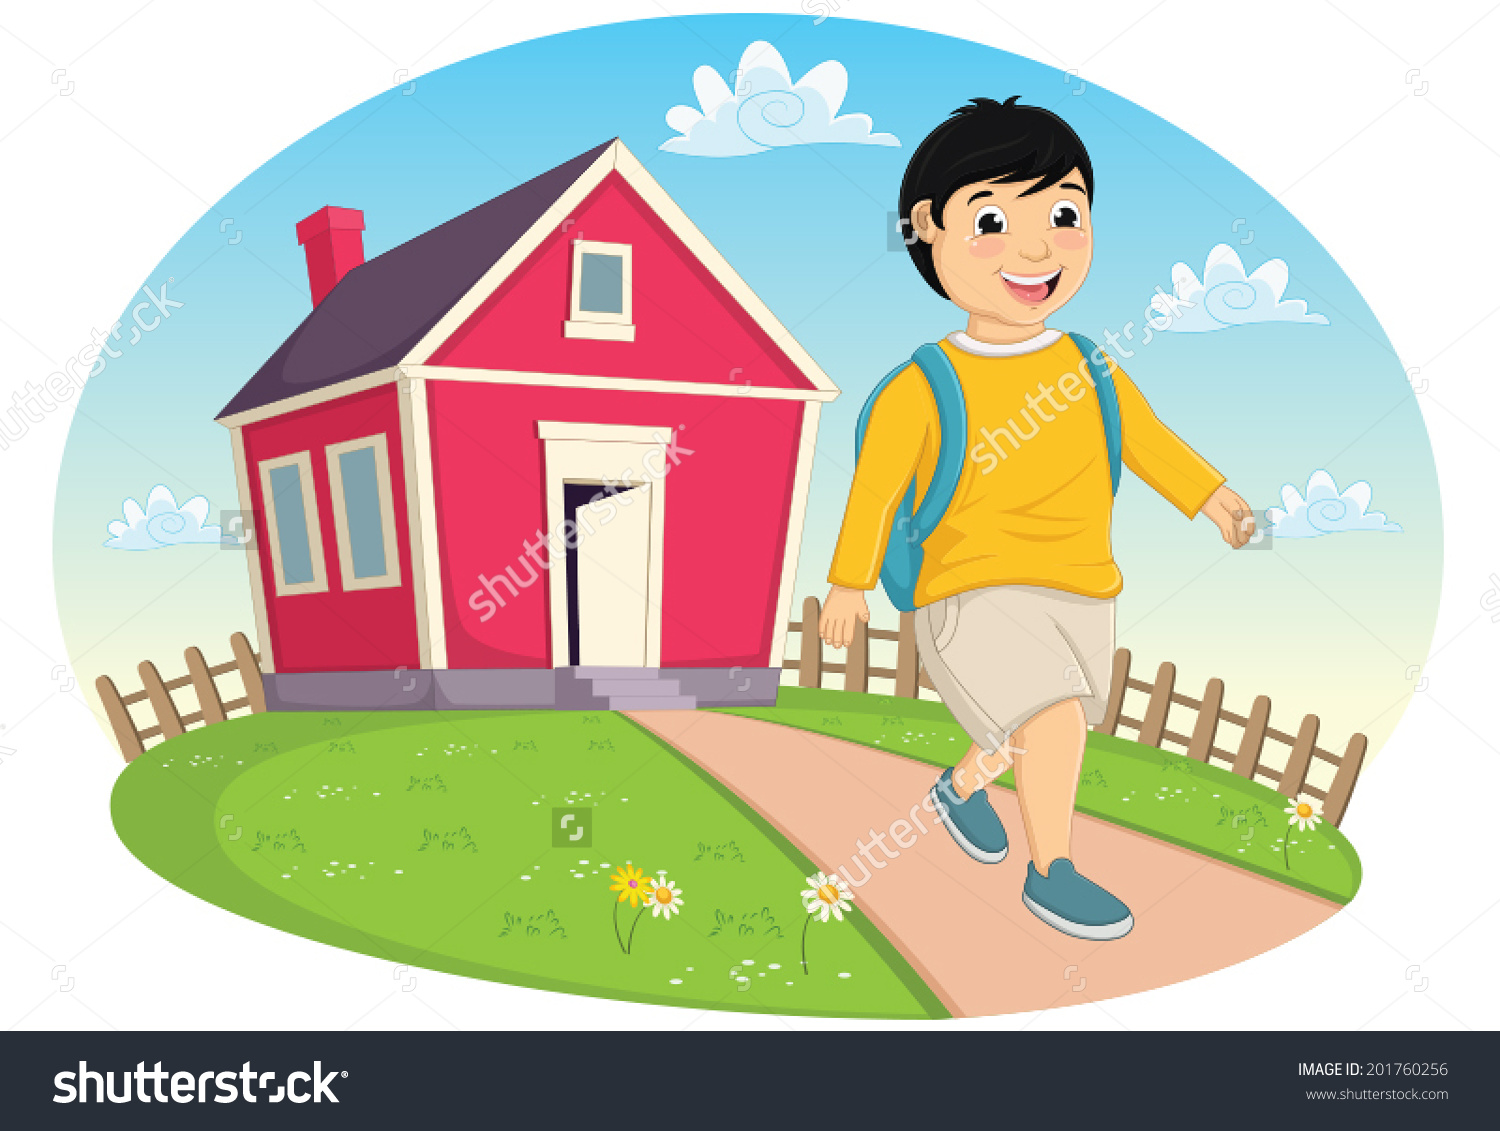 Home away from home clipart svg stock Your Home Clip Art – Clipart Free Download svg stock